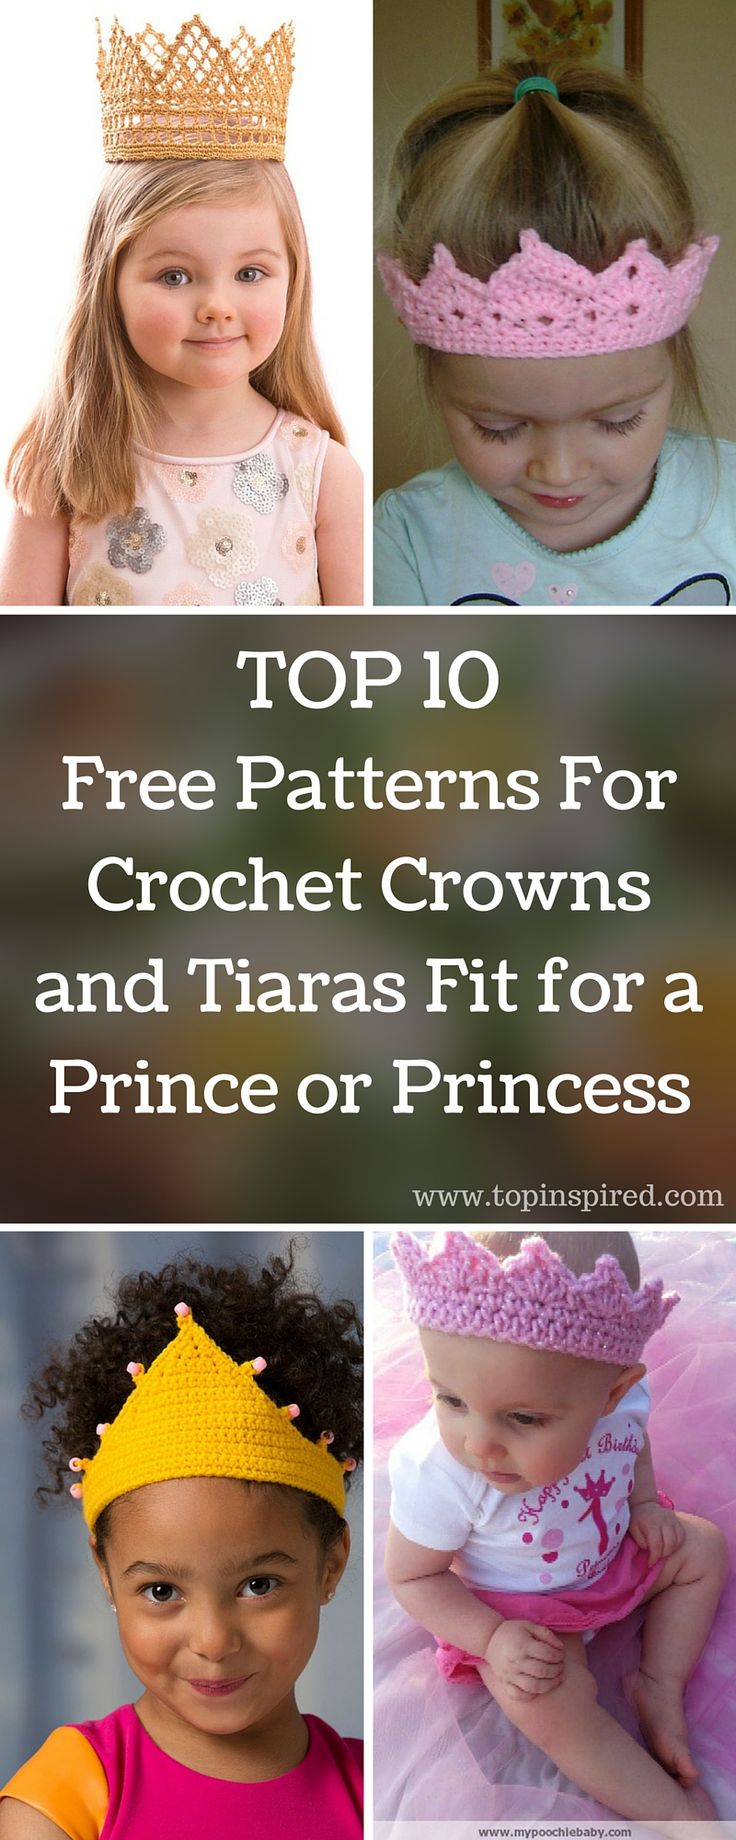 TOP 10 Free Patterns For Crochet Crowns and Tiaras Fit for a Prince or Princess via @Topinspired